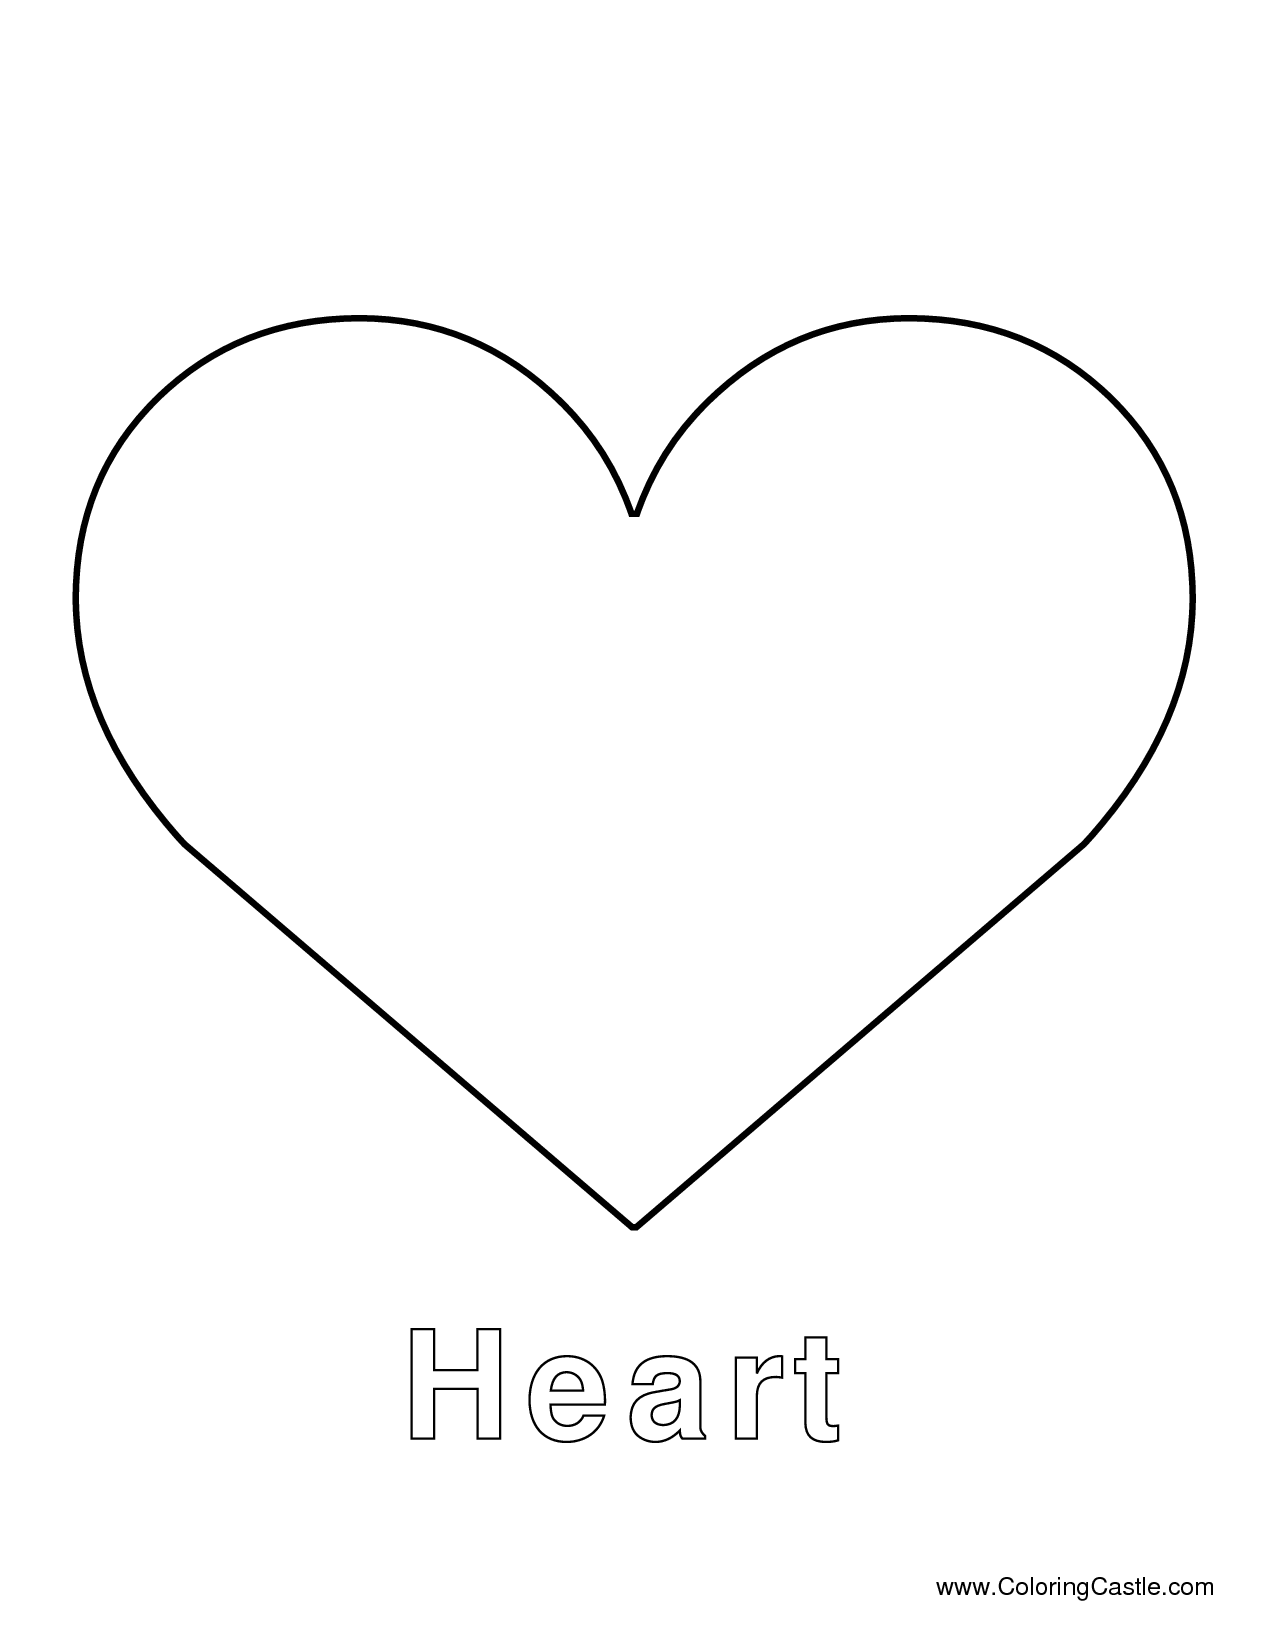 This heart has a stylish shape yet the lines are simple